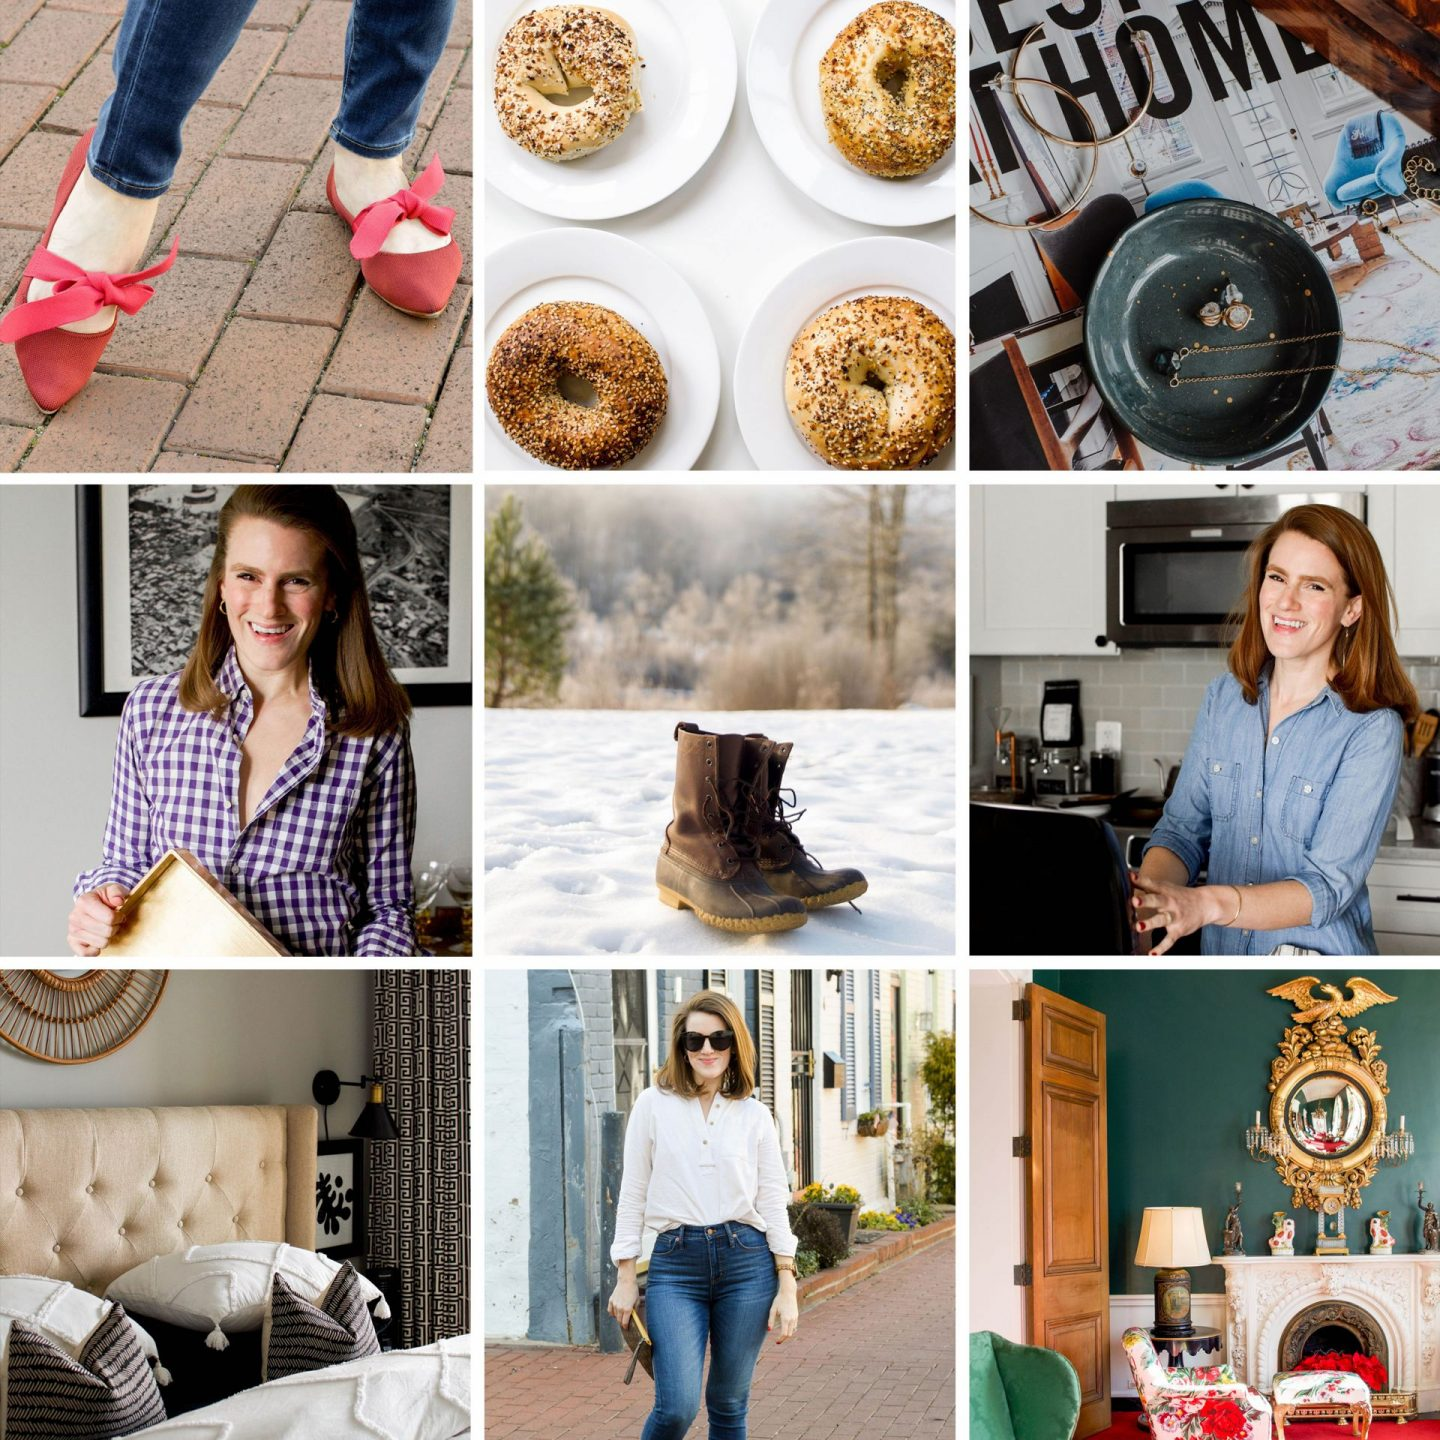 Top 10 Blog Posts of 2020: Home, Travel, Style, and More